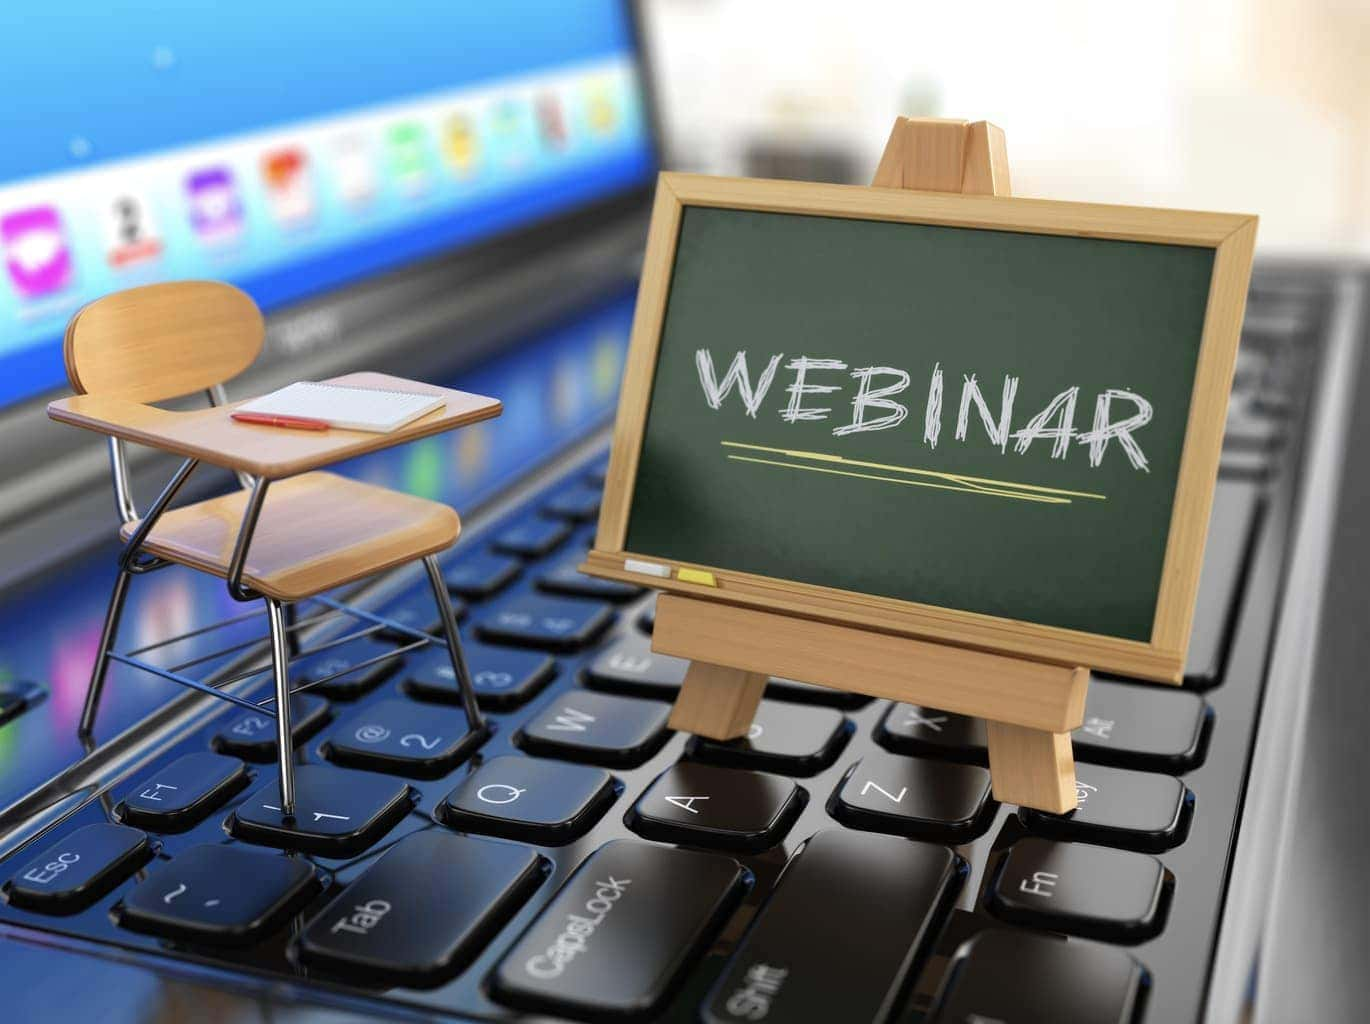 Join a free webinar with Minitravellers and Eventbrite to learn about promoting family events!